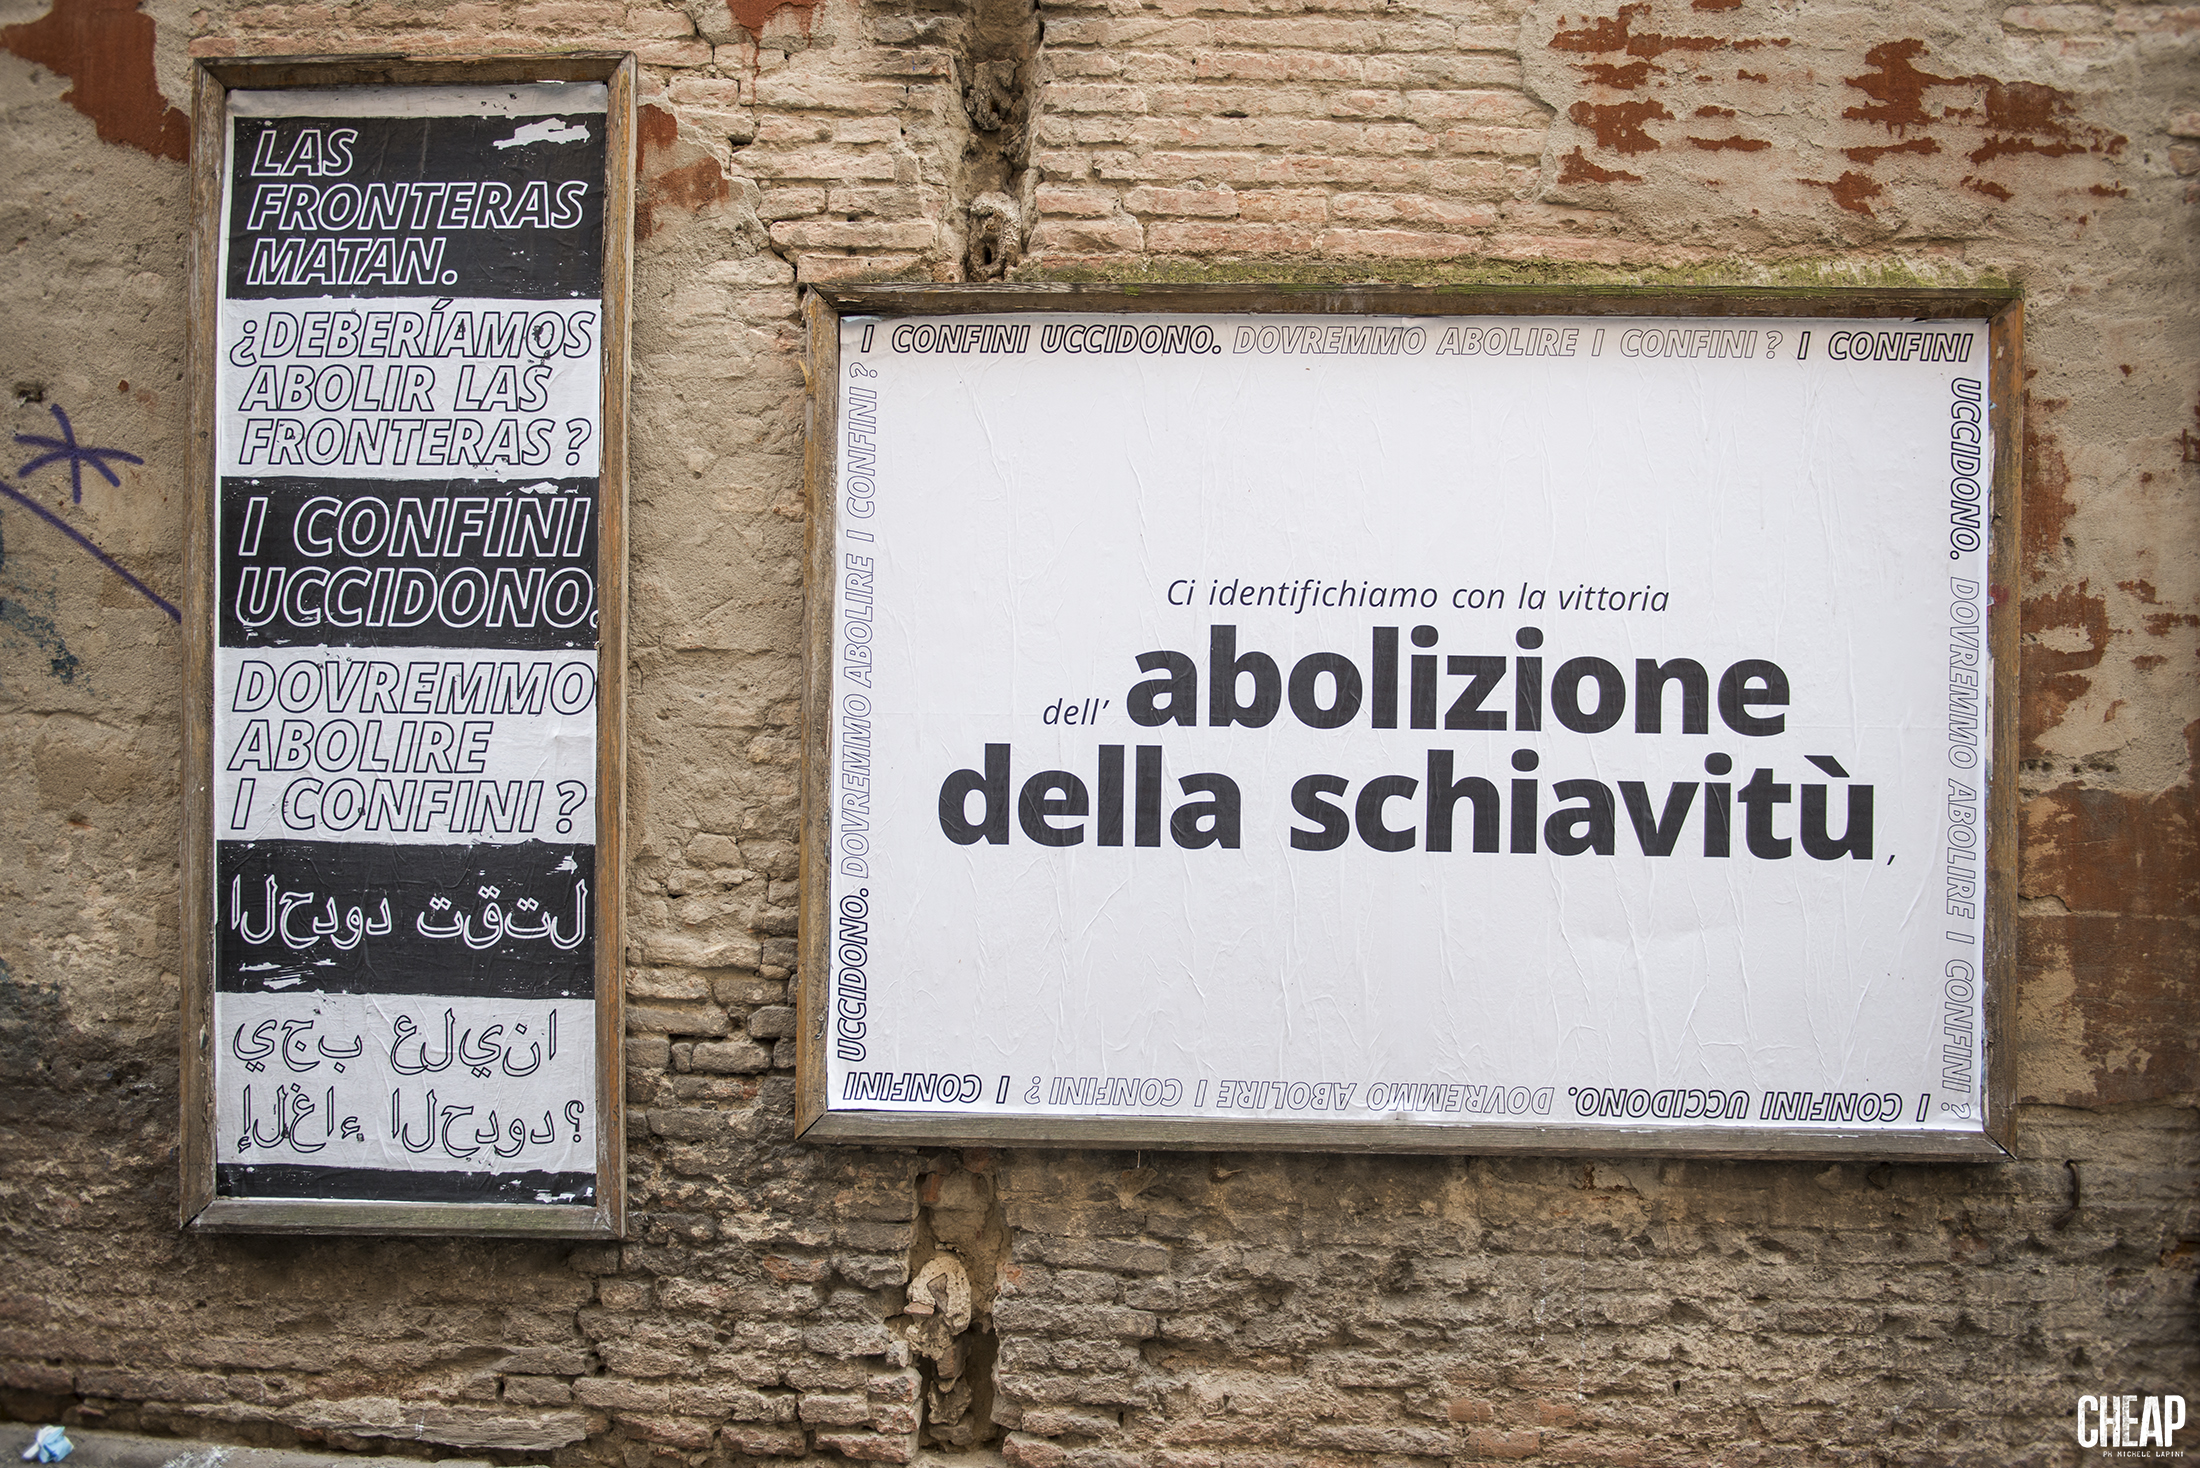 CHEAP X Tania Bruguera | Referendum | Atlas of Transitions HOME | Via dell'Abbadia